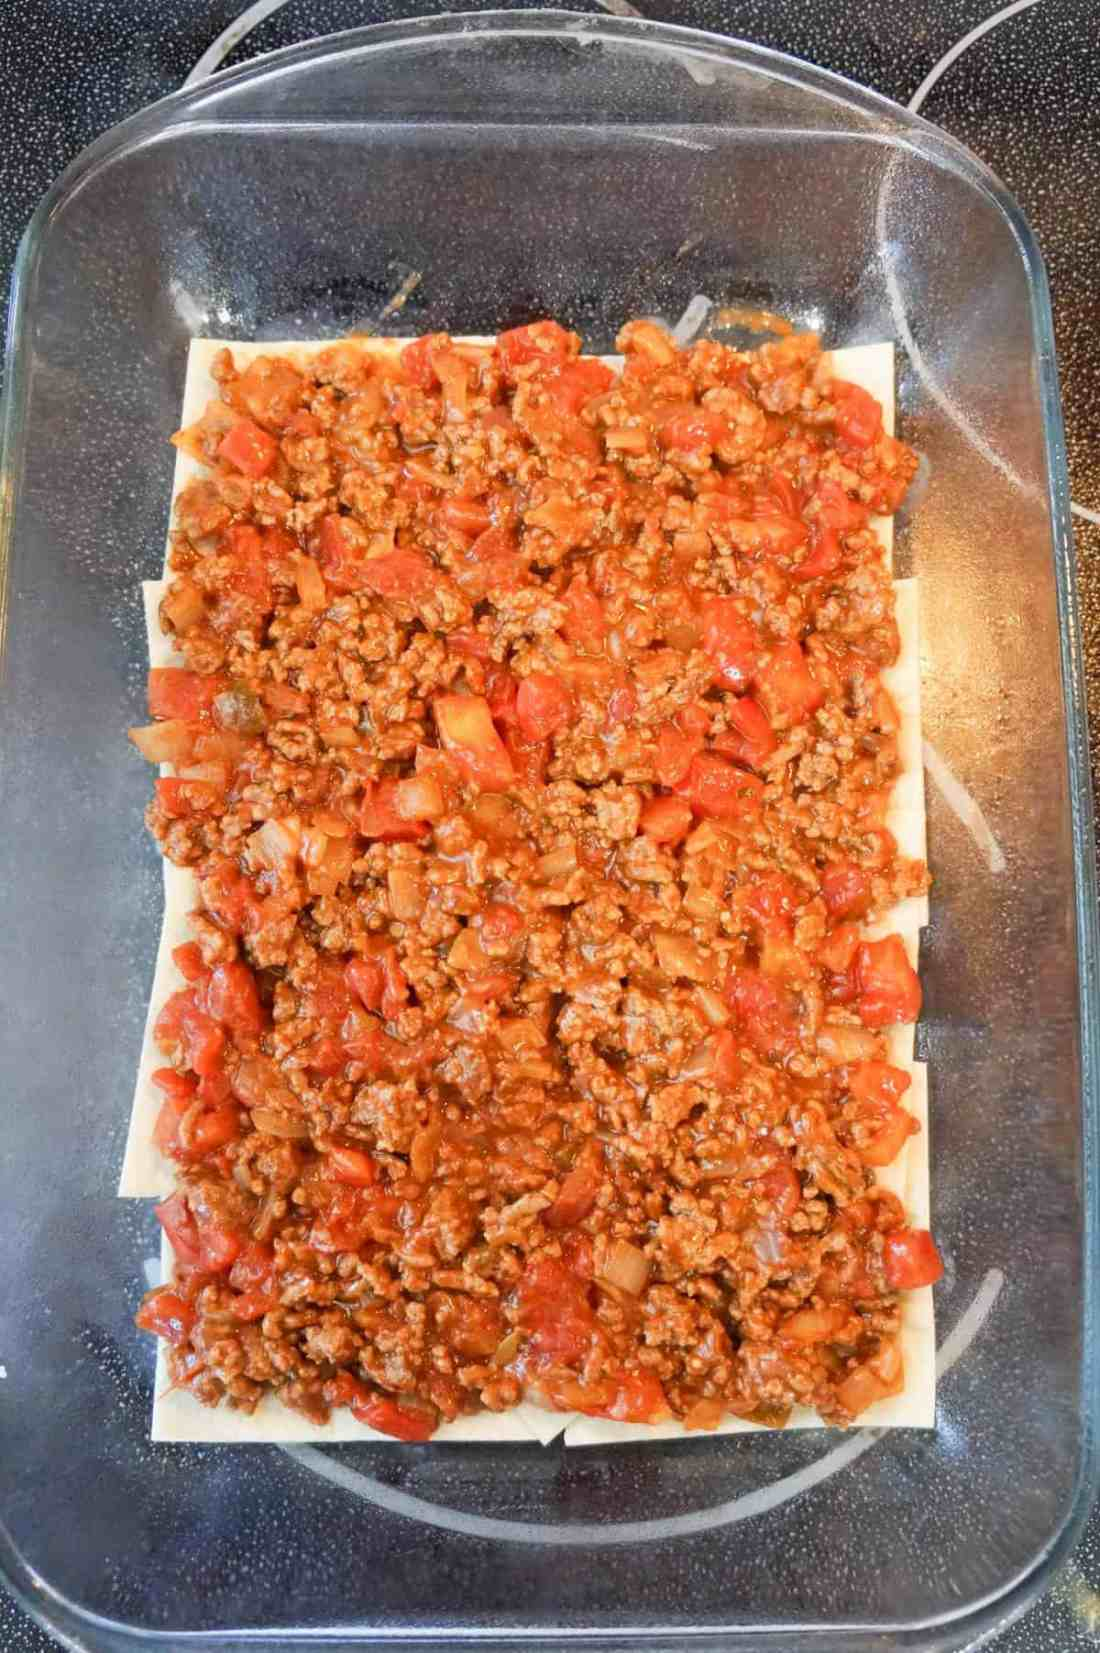 ground beef, salsa and Rotel mixture on top of flour tortilla pieces in a baking dish